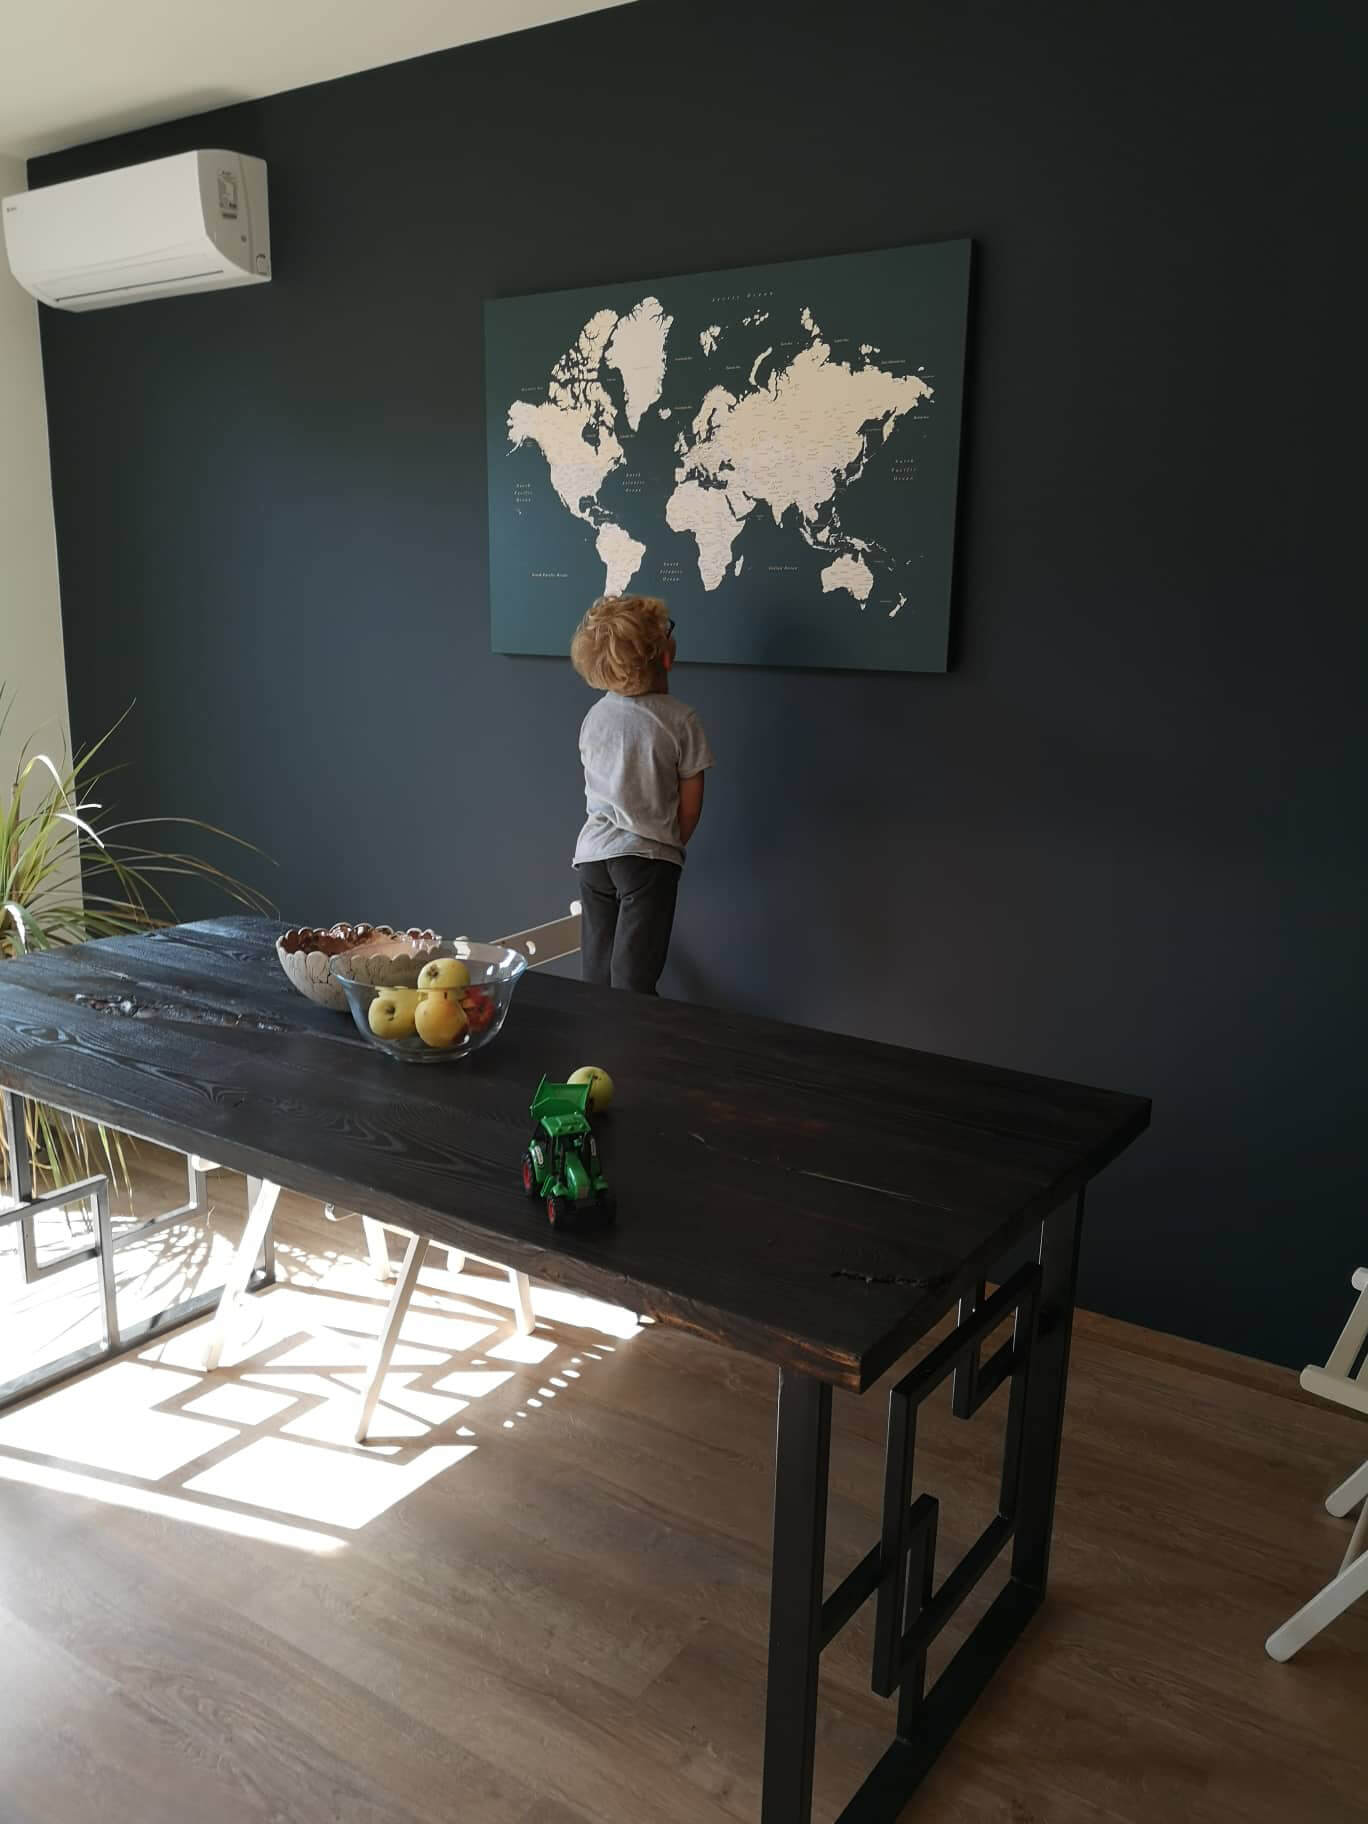 map for family to track travels